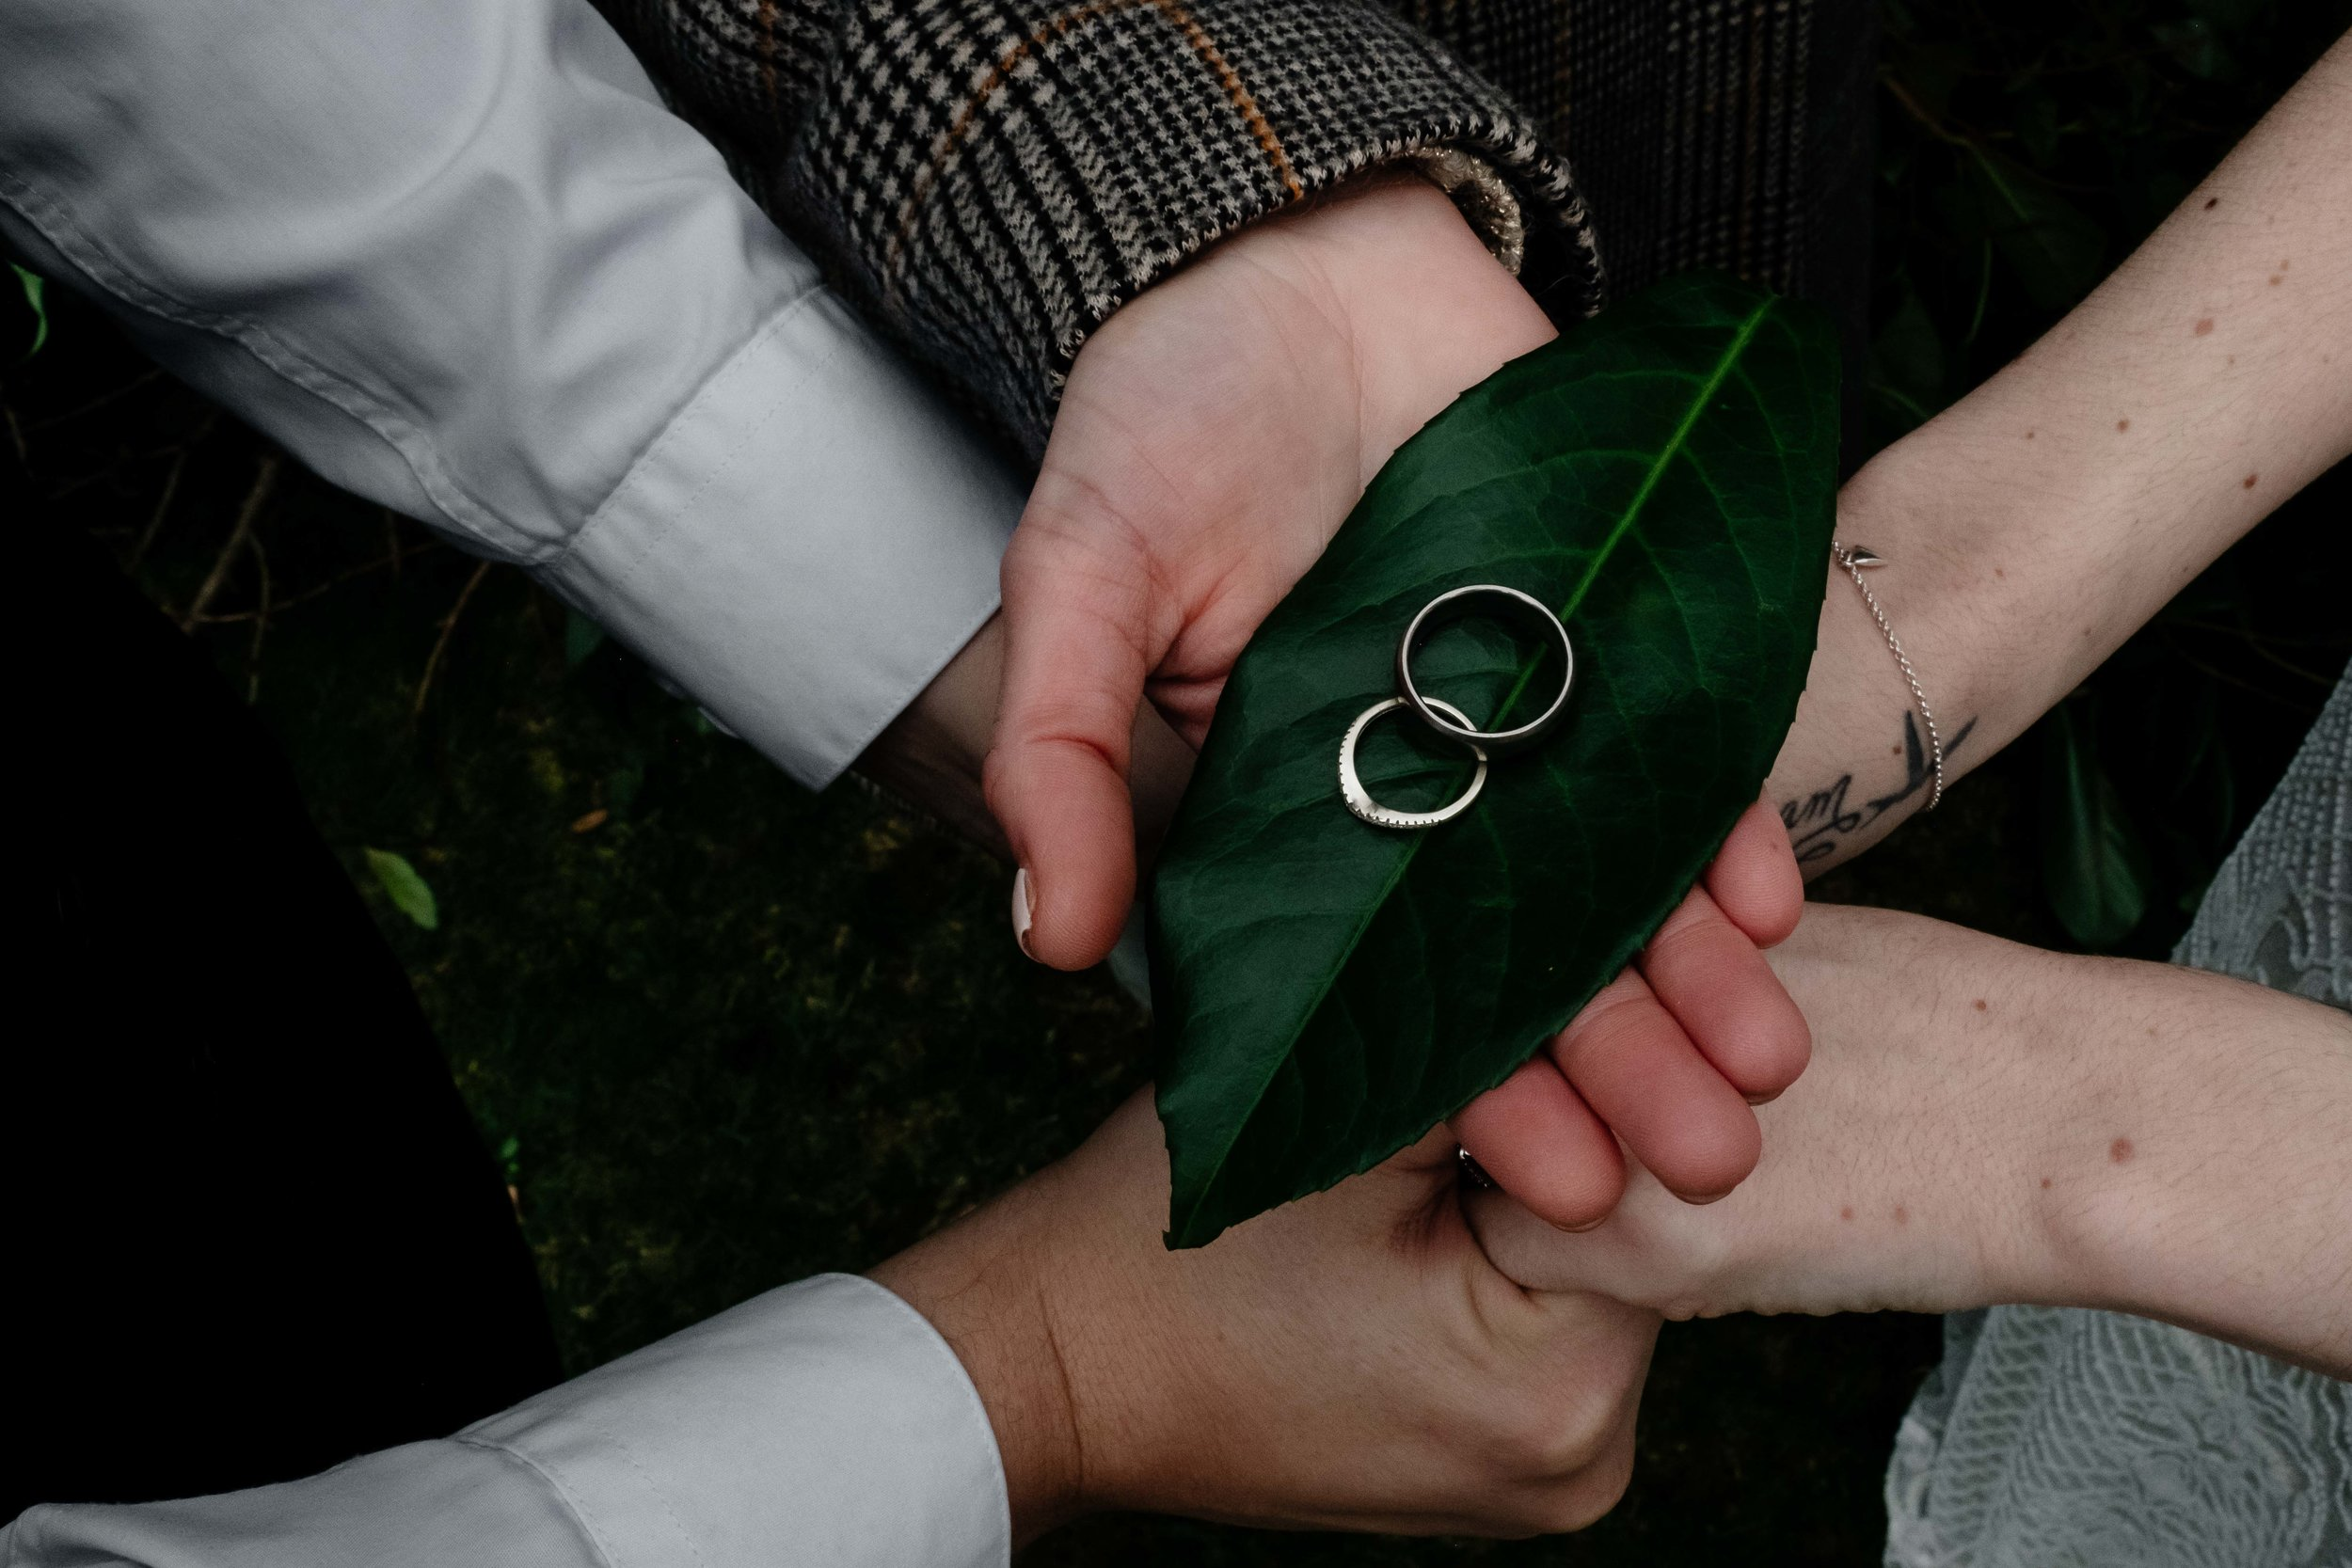 The celebrant holds the wedding bands out which are placed on a large leaf.